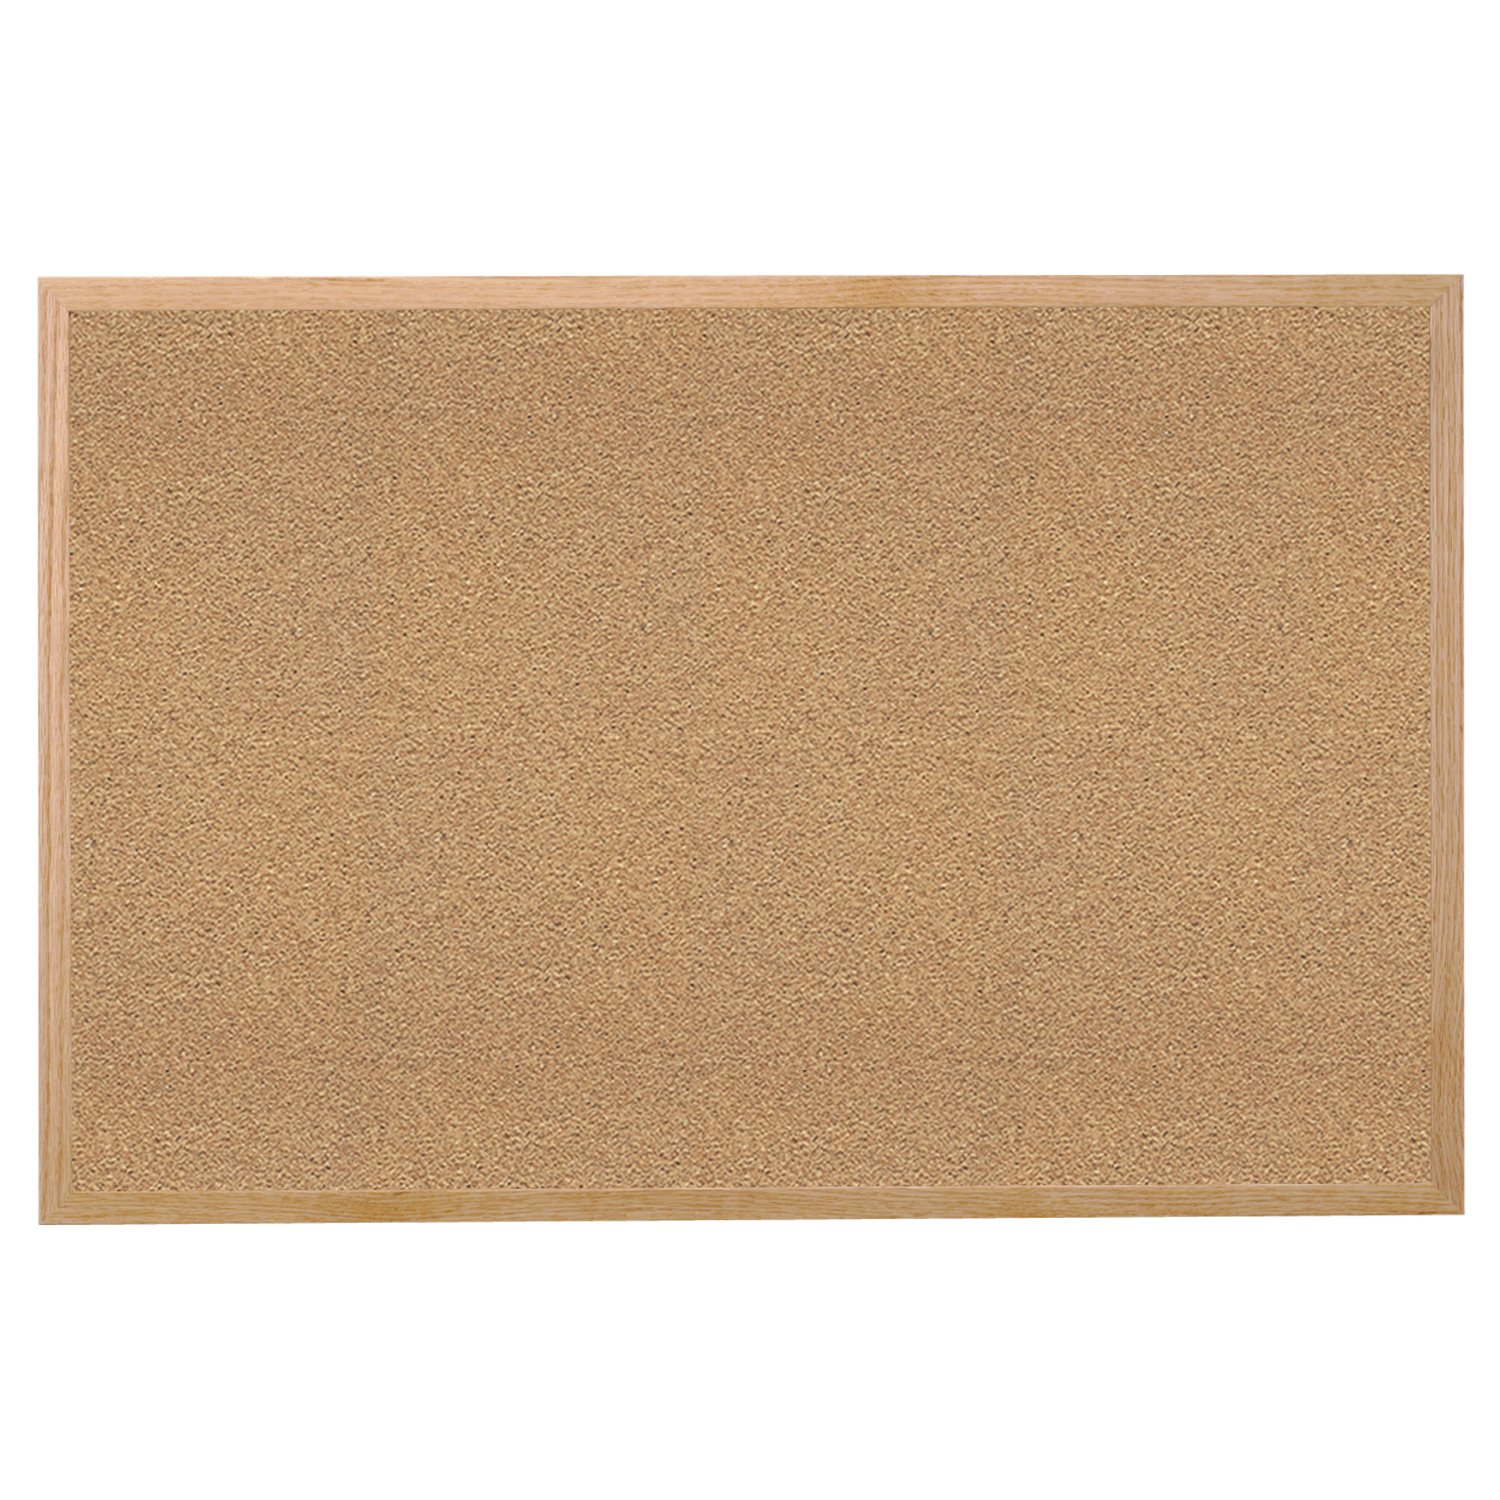 Ghent 48.5'' x 60.5'' Wood Frame Natural Cork Bulletin Board, Made in the USA by Ghent